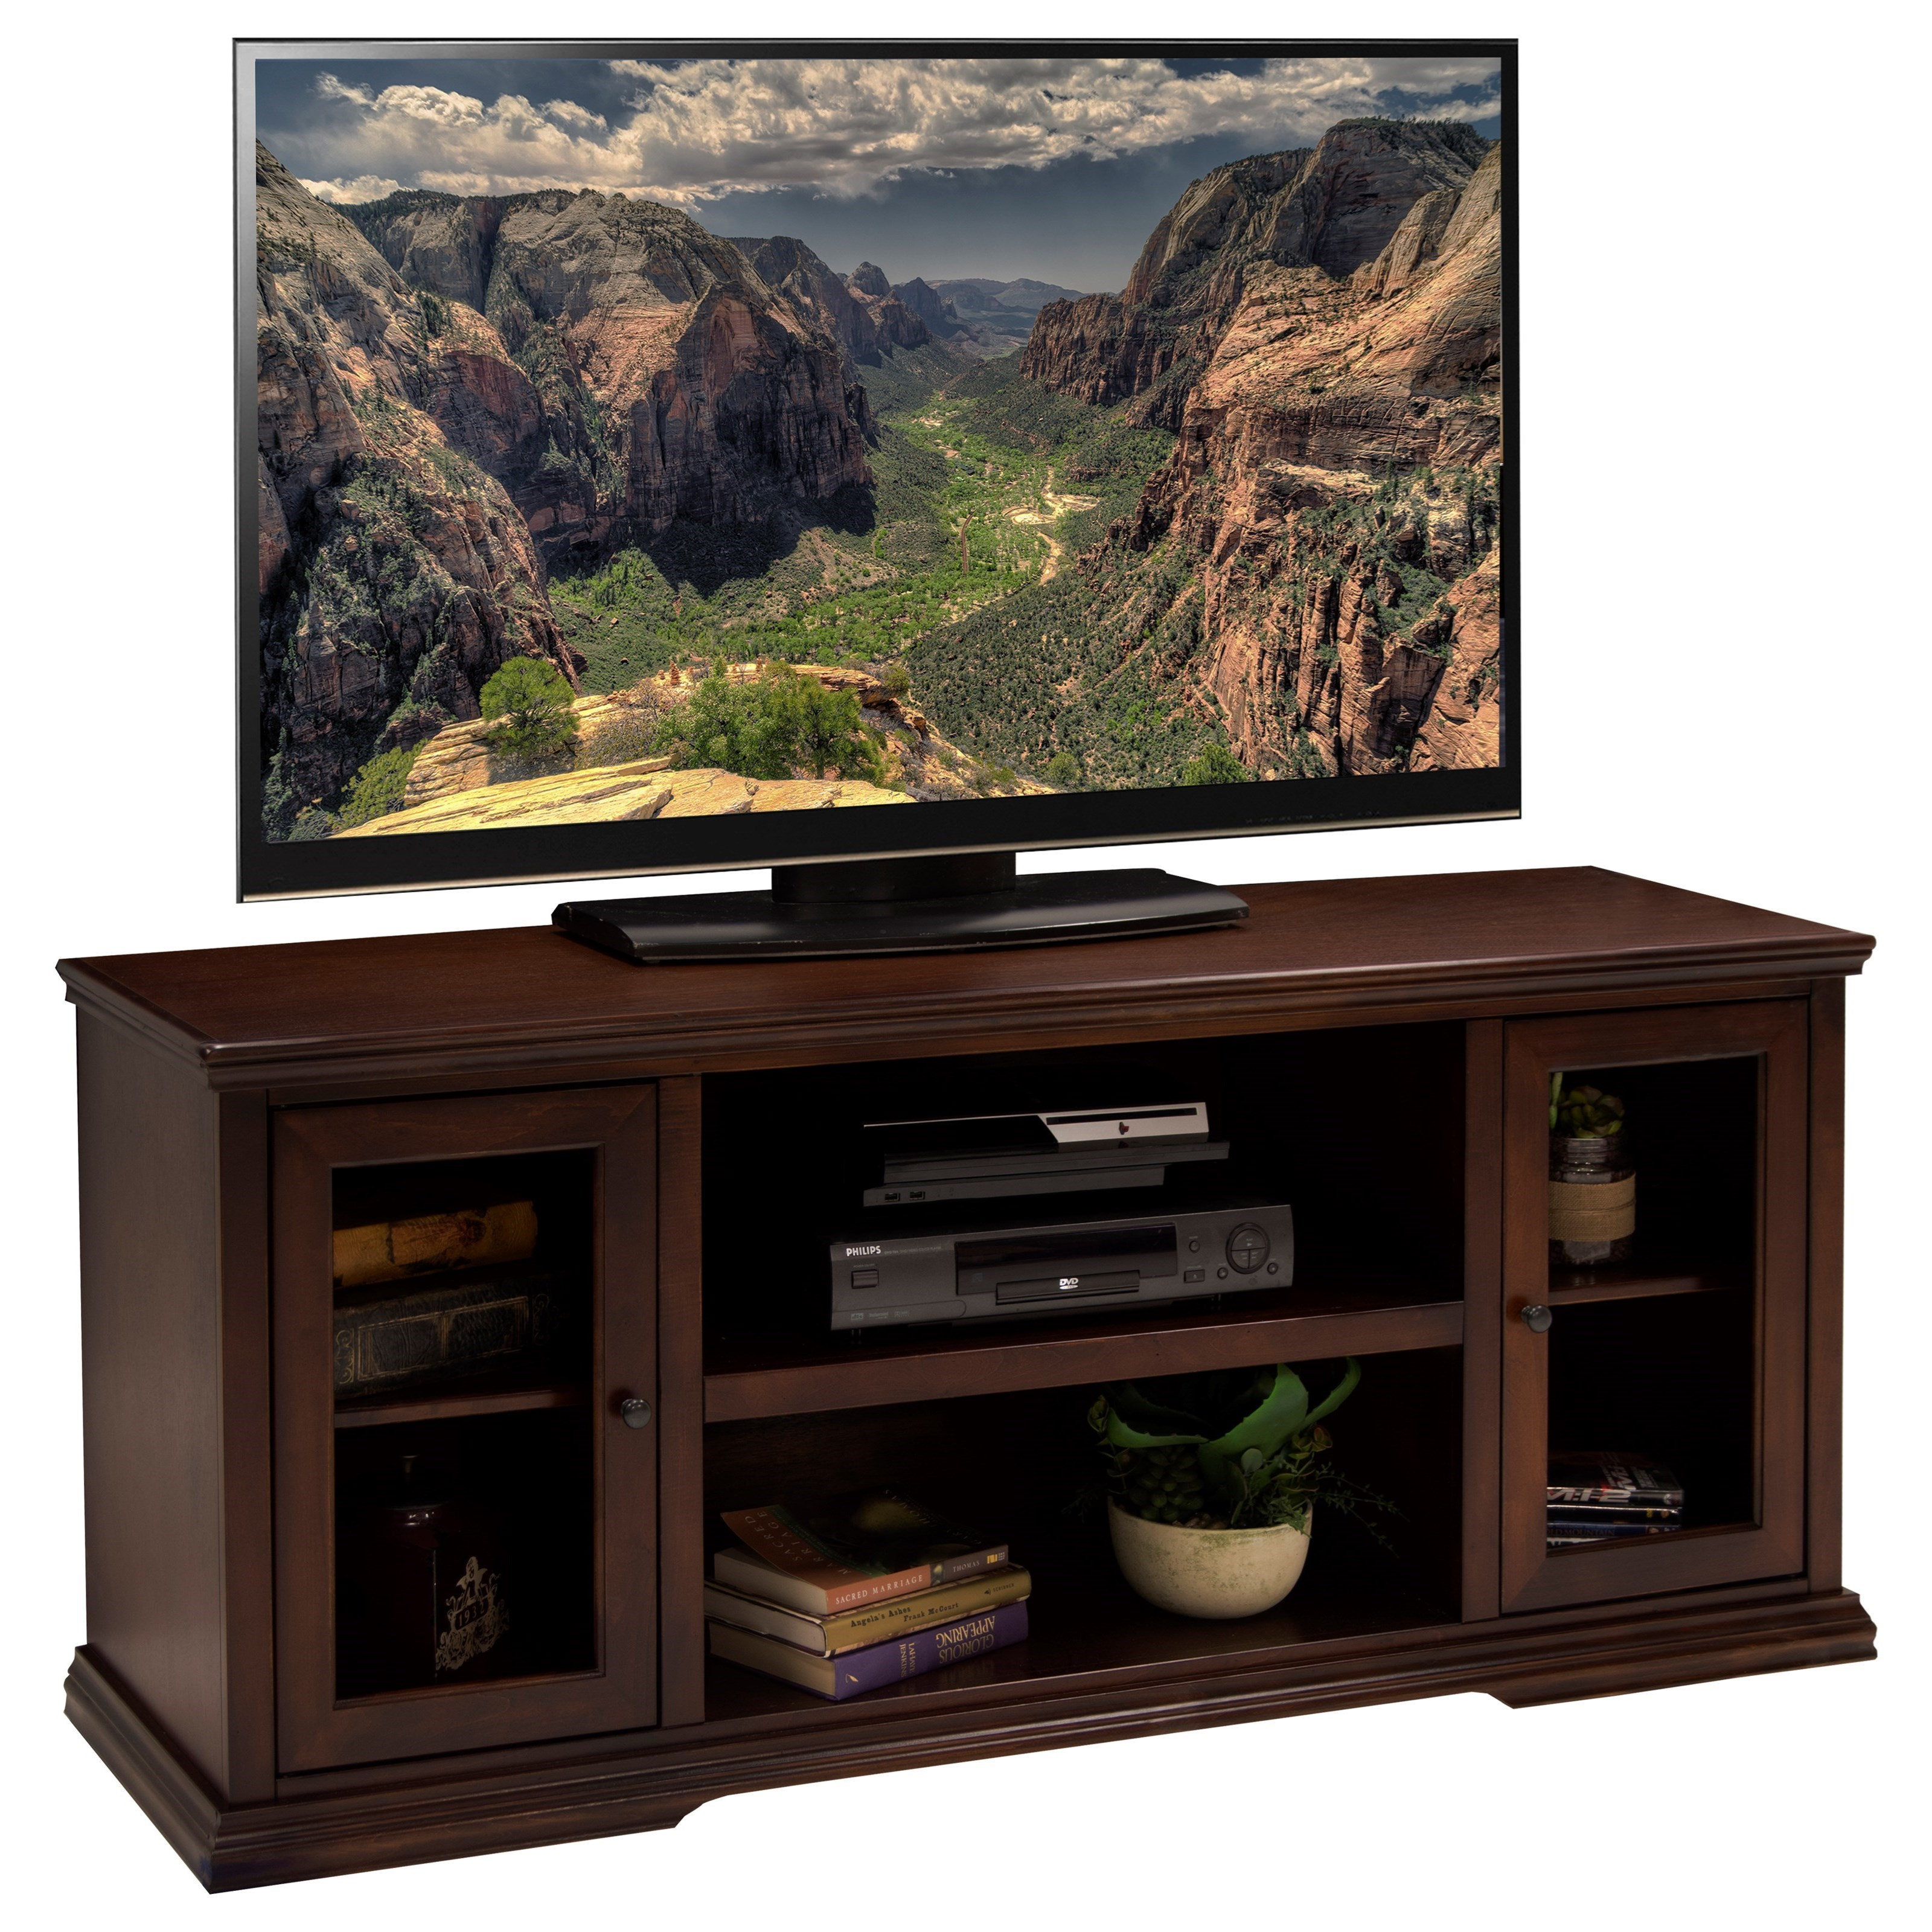 Legends furniture ashton place ap1228 dnc 62 inch tv for Tv console with storage